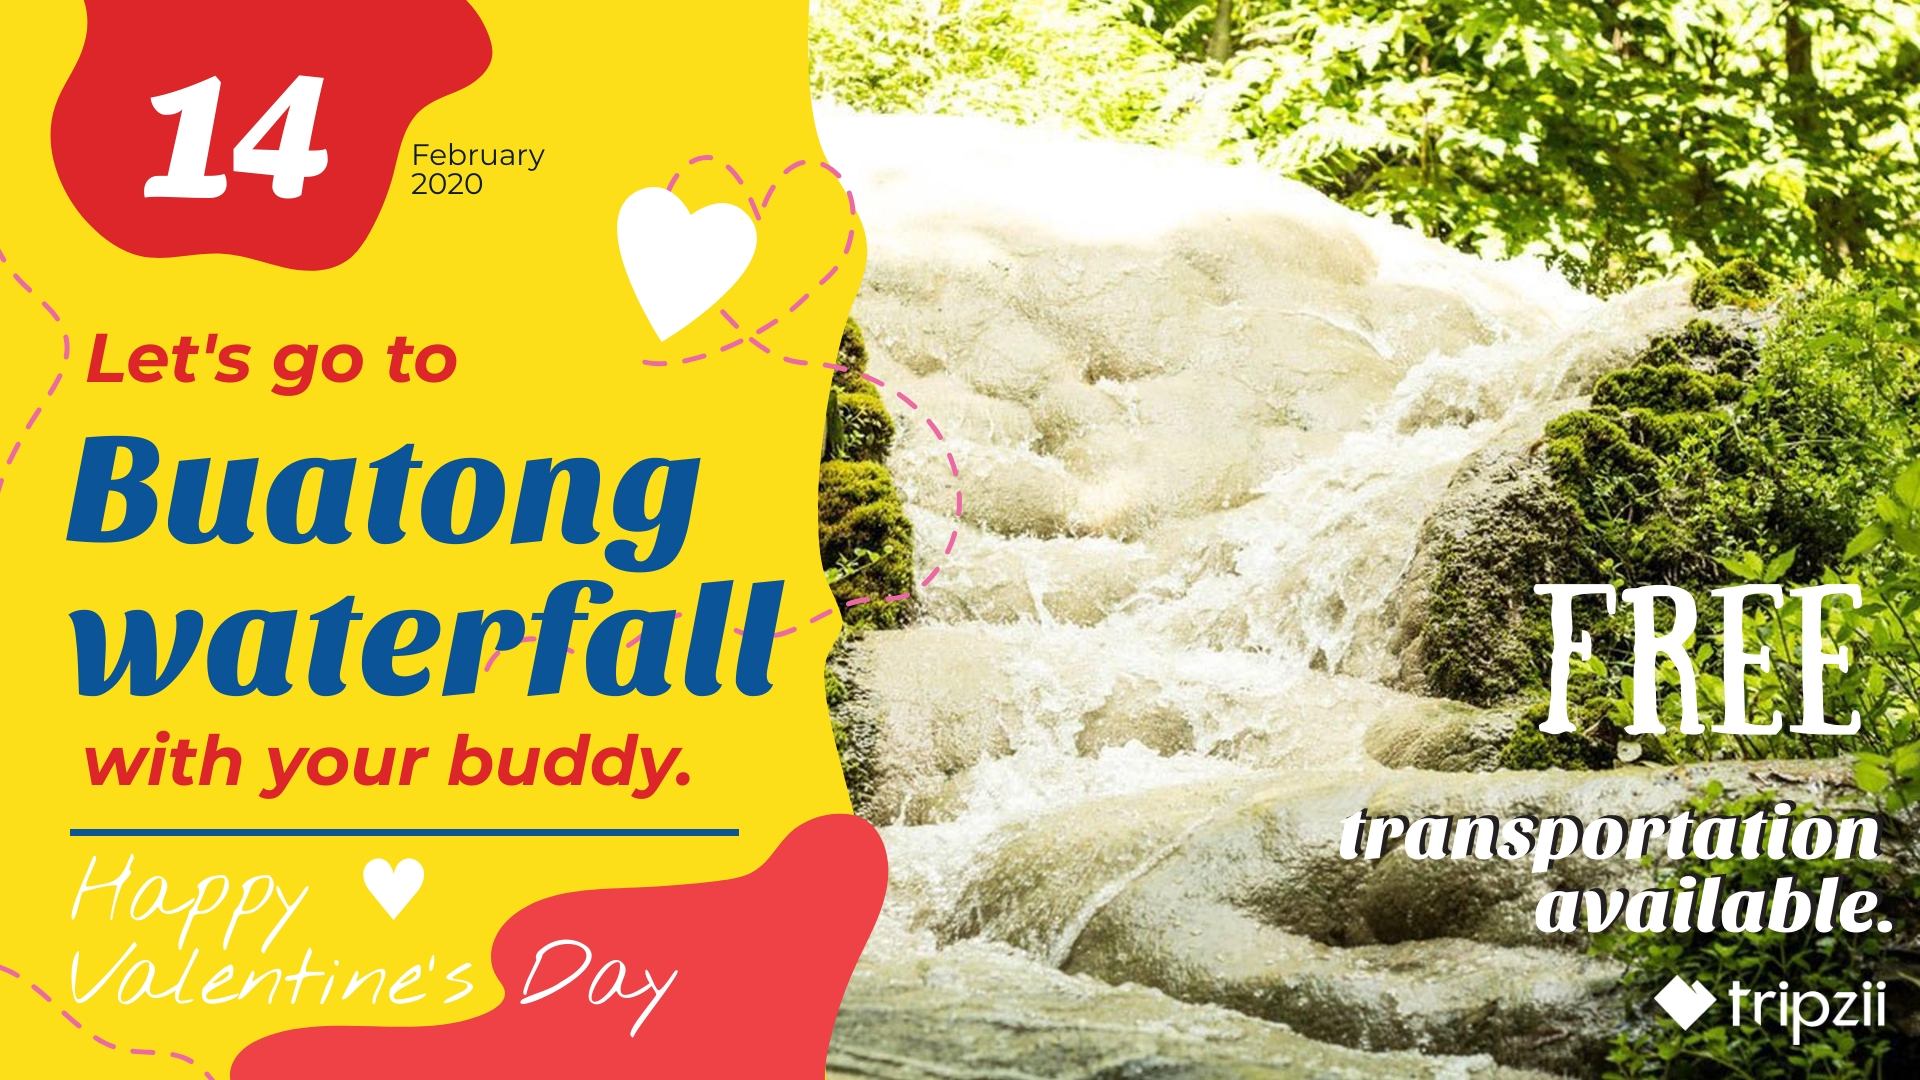 If you are foreigners who stay in Chiang Mai, we have got special Valentine's Day gift for you.